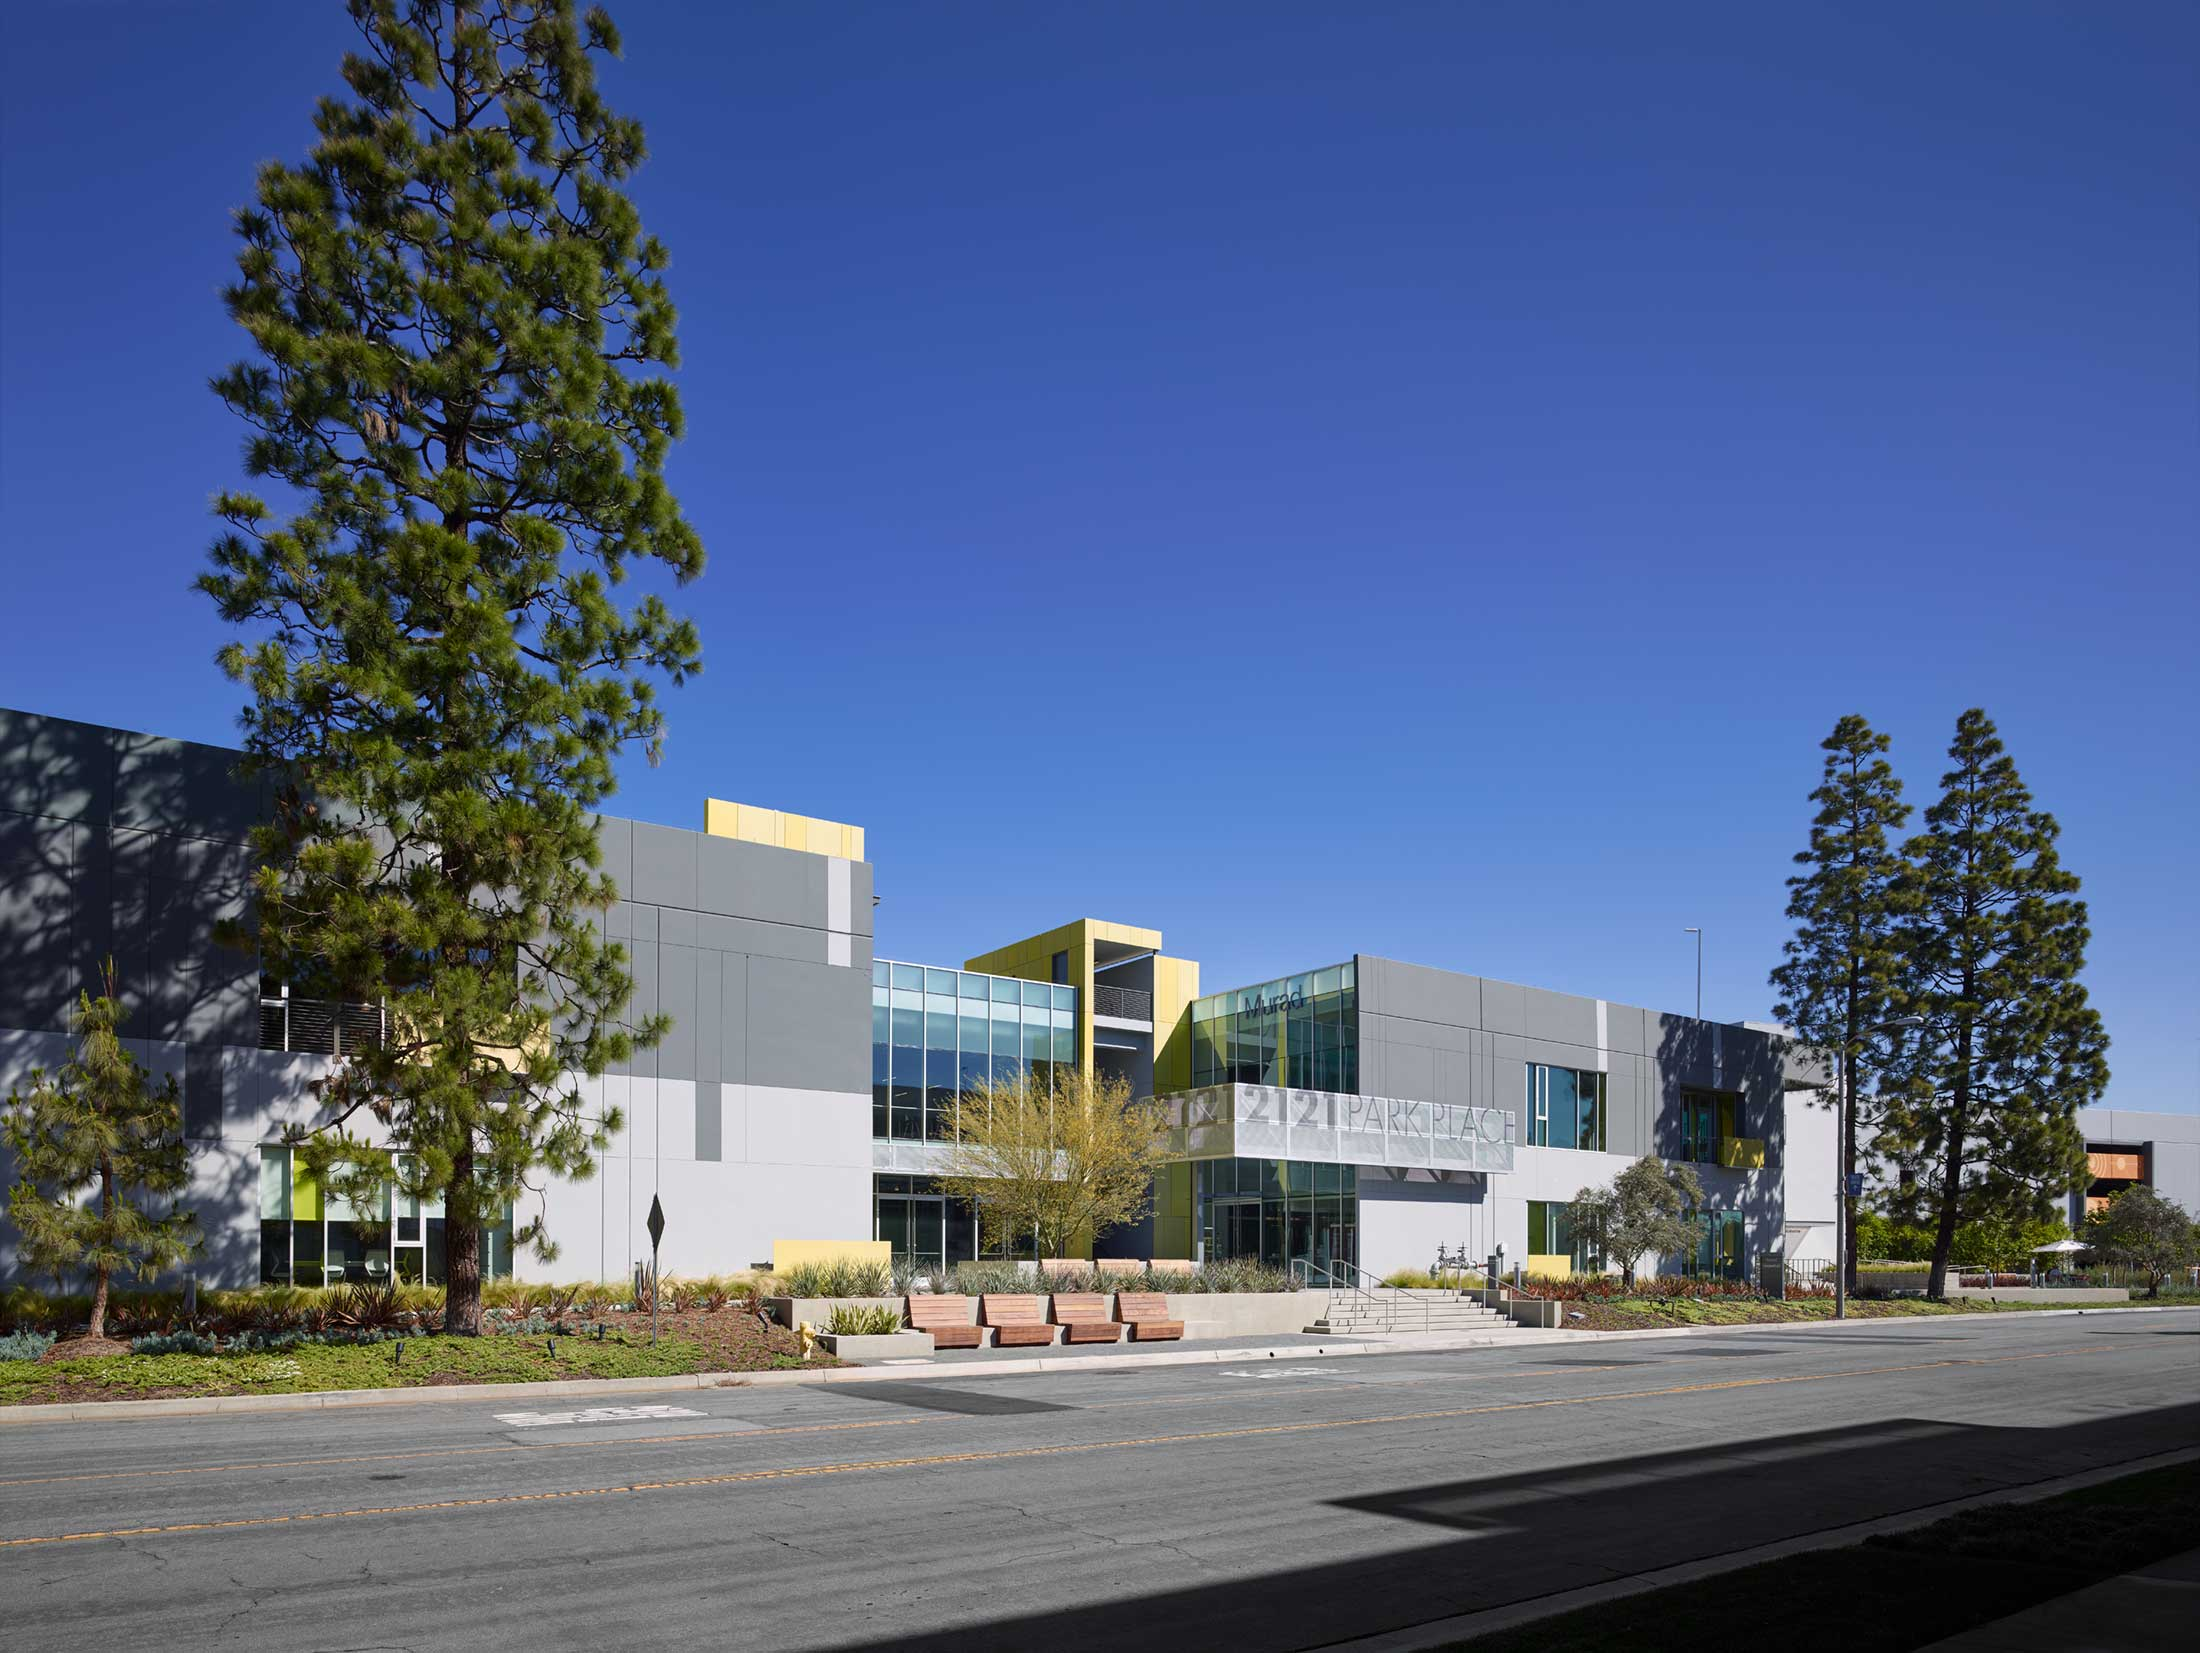 modern-architecture-building-retail-campus-workplace-california-shubindonaldson-2121-park-place-11